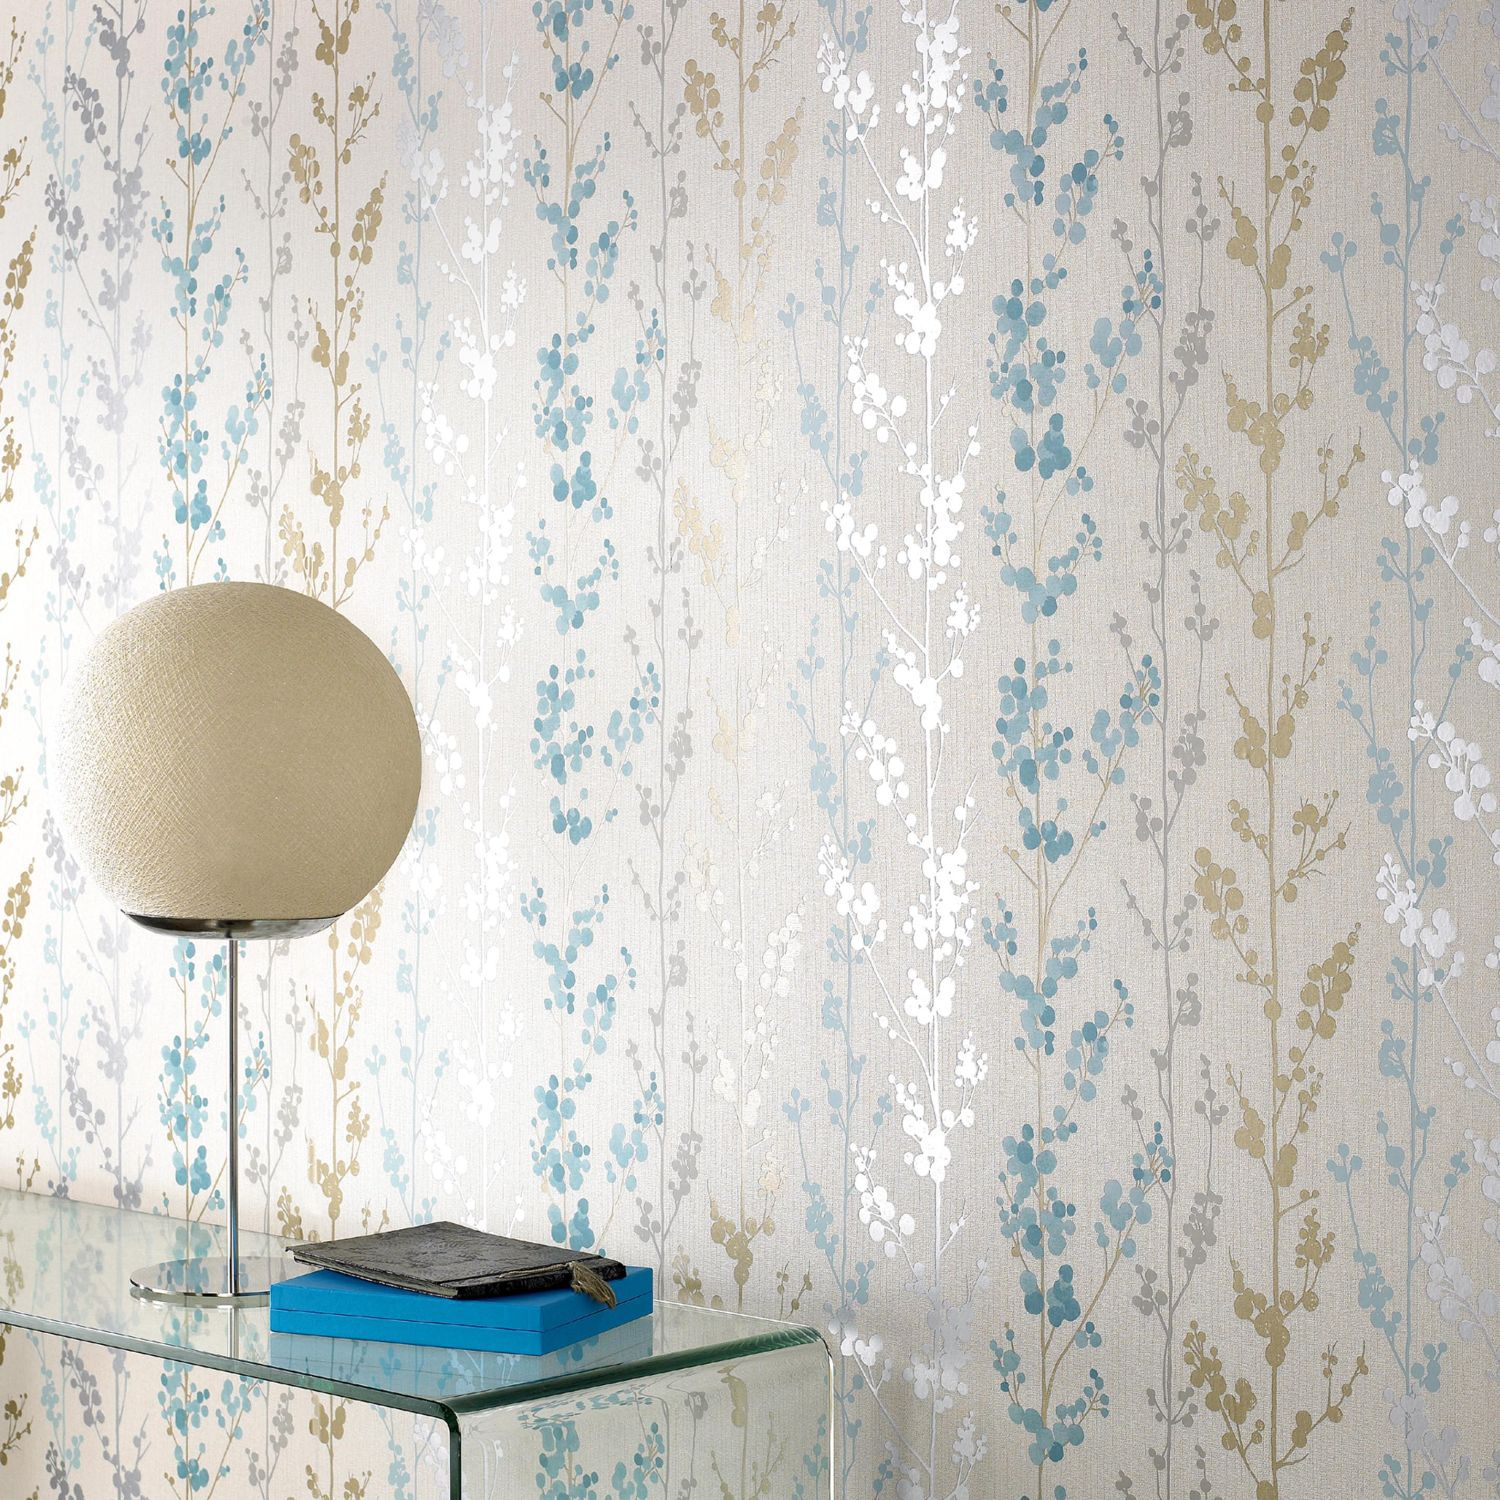 Graham & Brown Blue teal berries wallpaper - House of Fraser